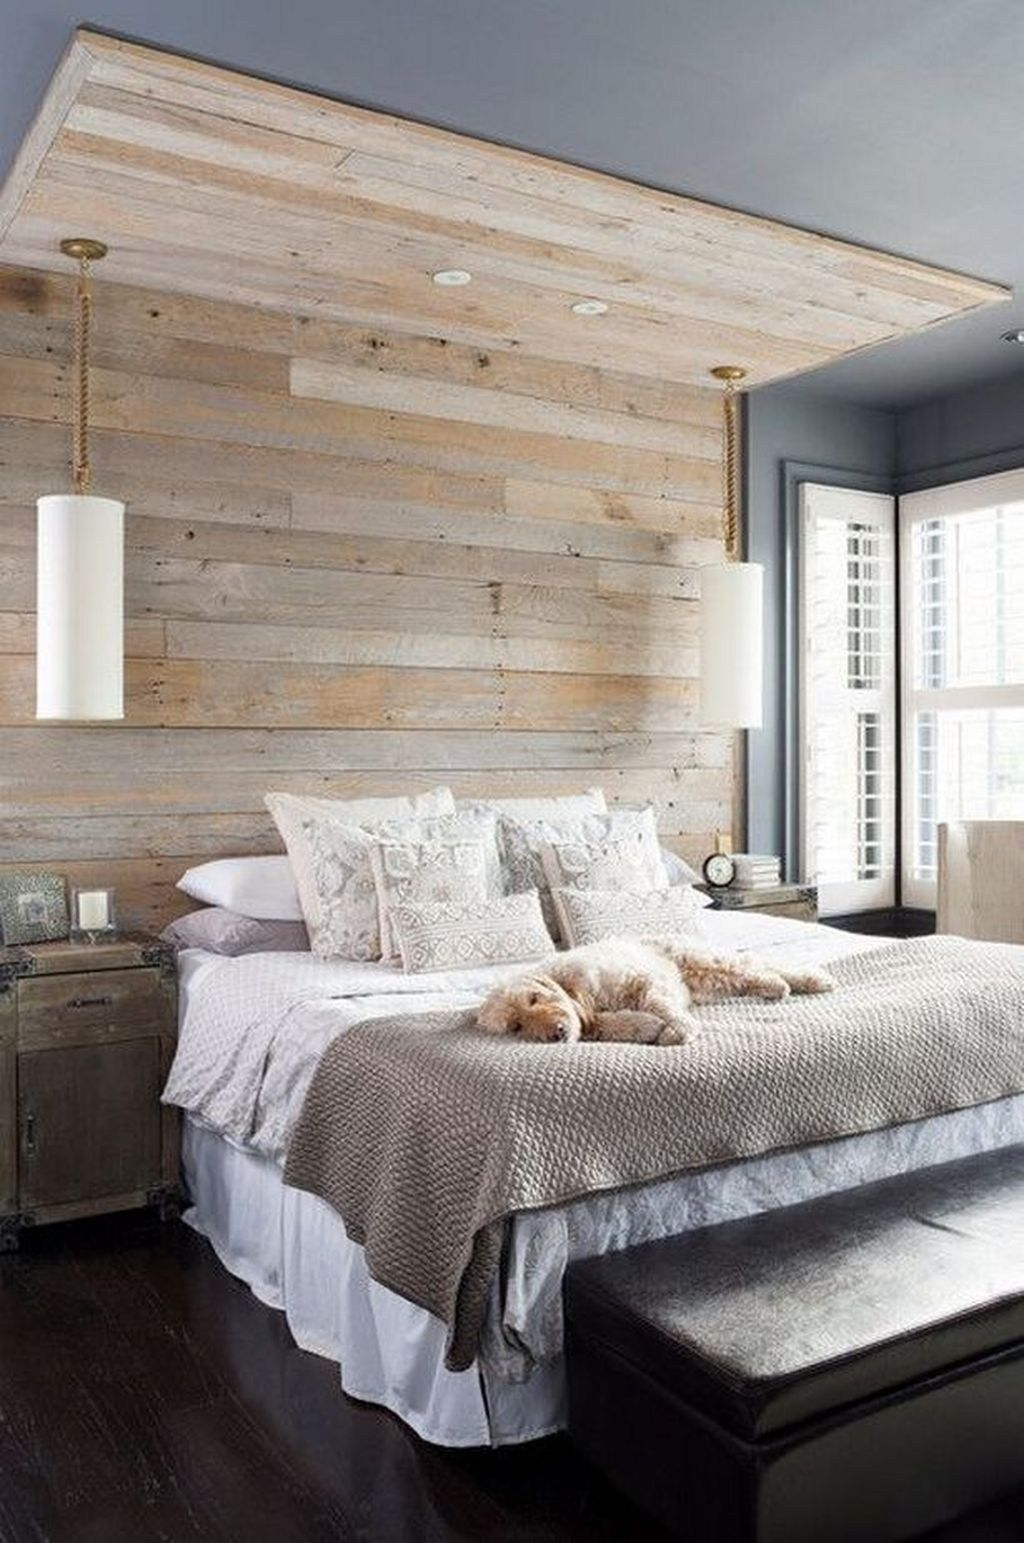 20 Cozy Small Master Bedroom Decor Ideas For Couples To Try